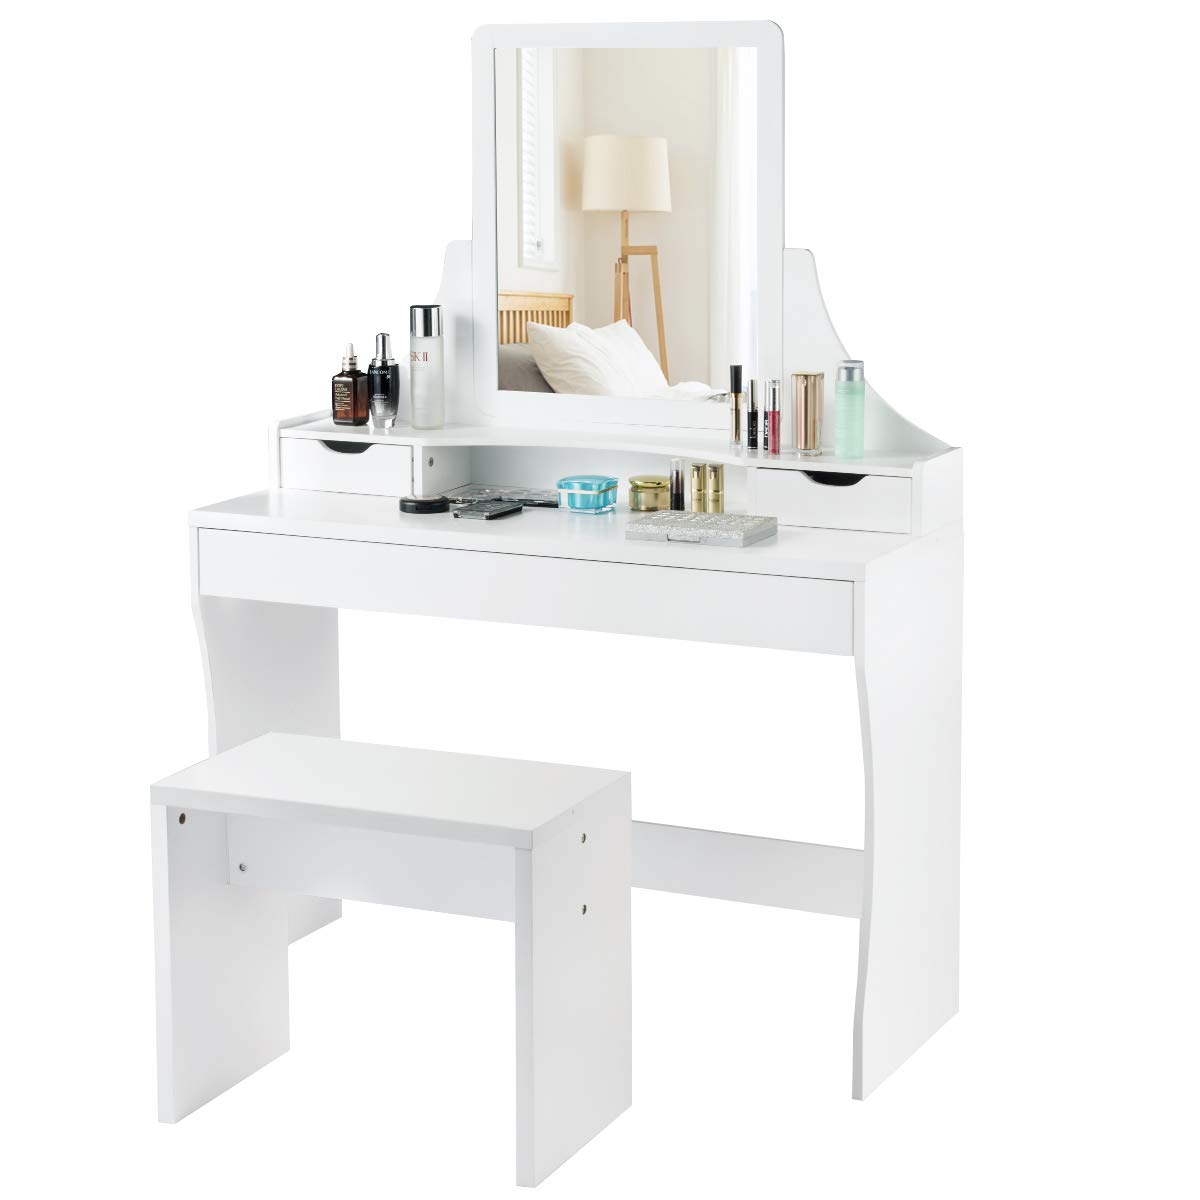 CHARMAID Vanity Set with Mirror & Stool, Makeup Dressing Table with 1 Large Sliding Drawer & 2 Small Drawers, Makeup Vanity Set for Girls Women Bedroom, Mirrored Vanity Table Set (White)